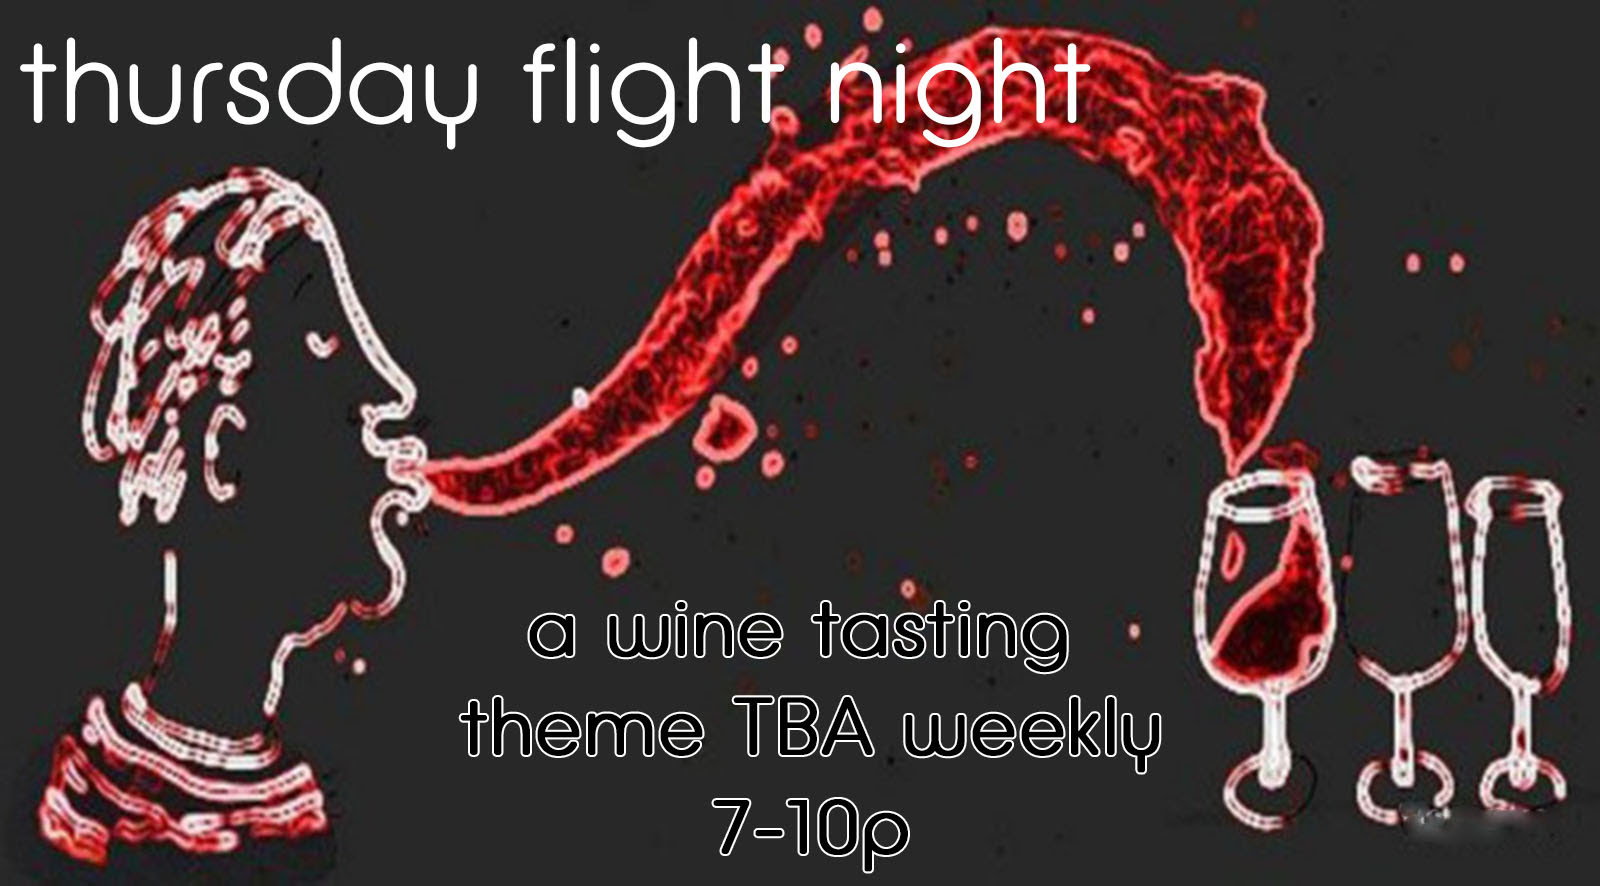 Thursday Flight Night 10.16.14